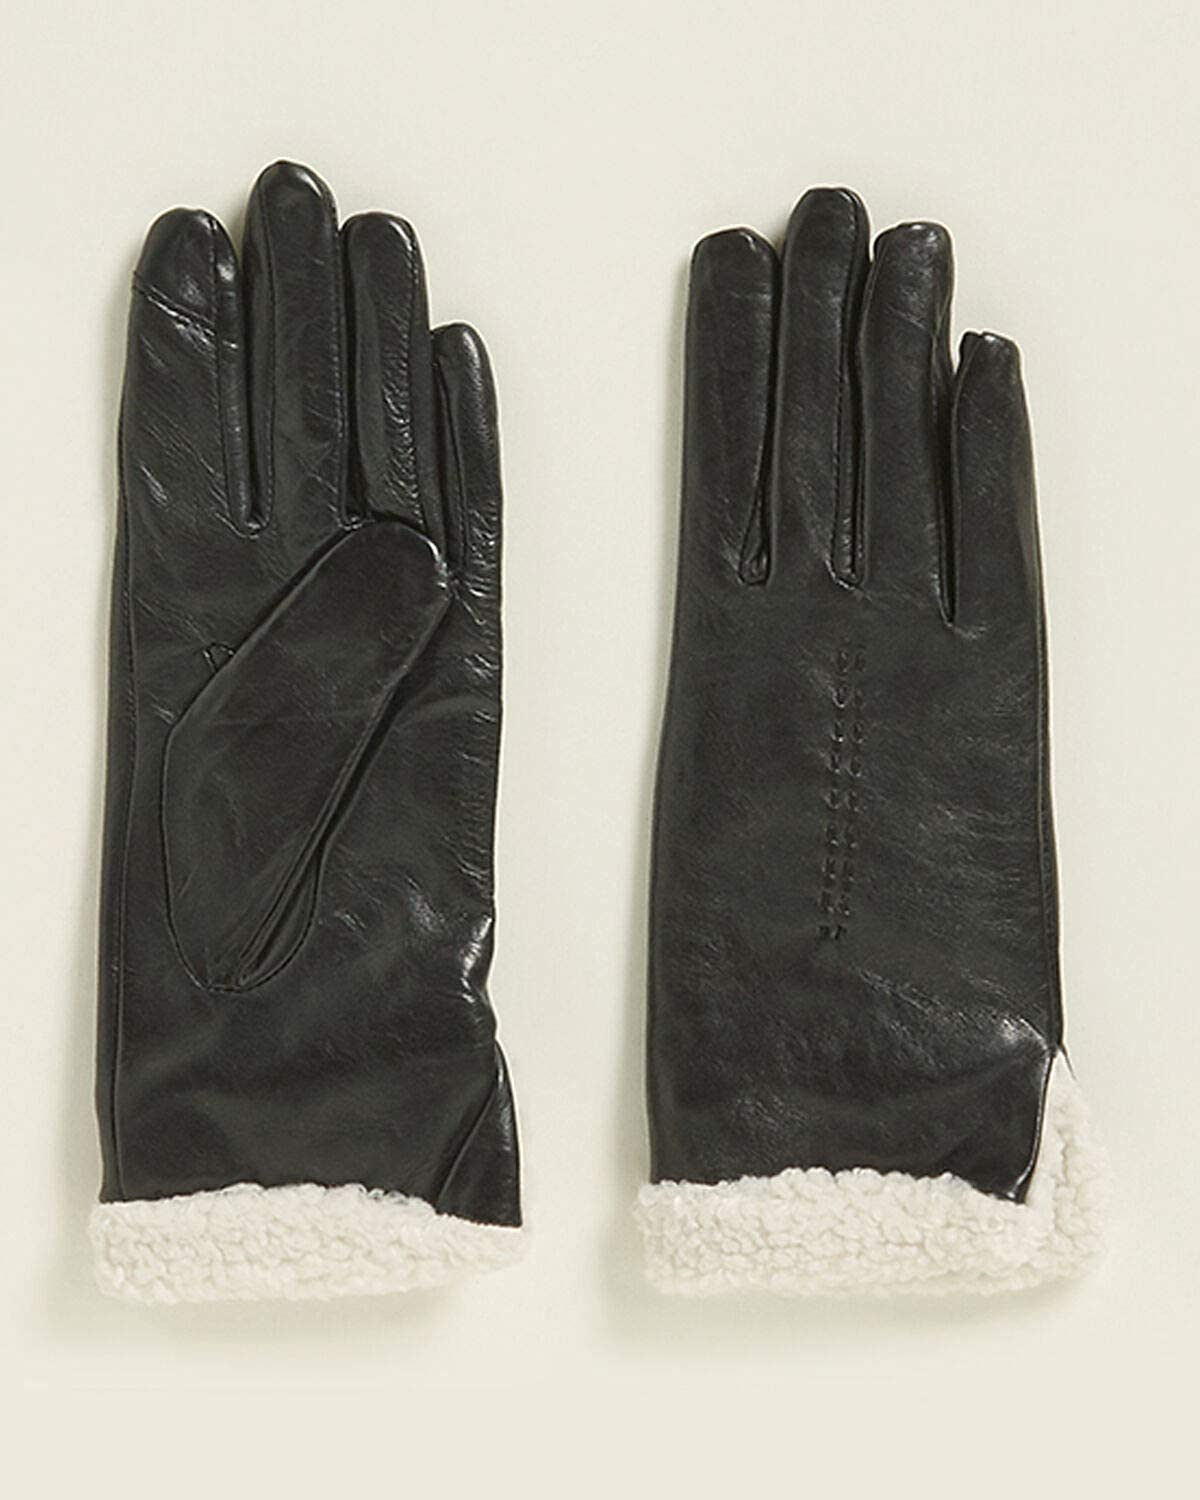 FOWNES BROTHERS Leather & Sherpa Black/White Gloves Women's M